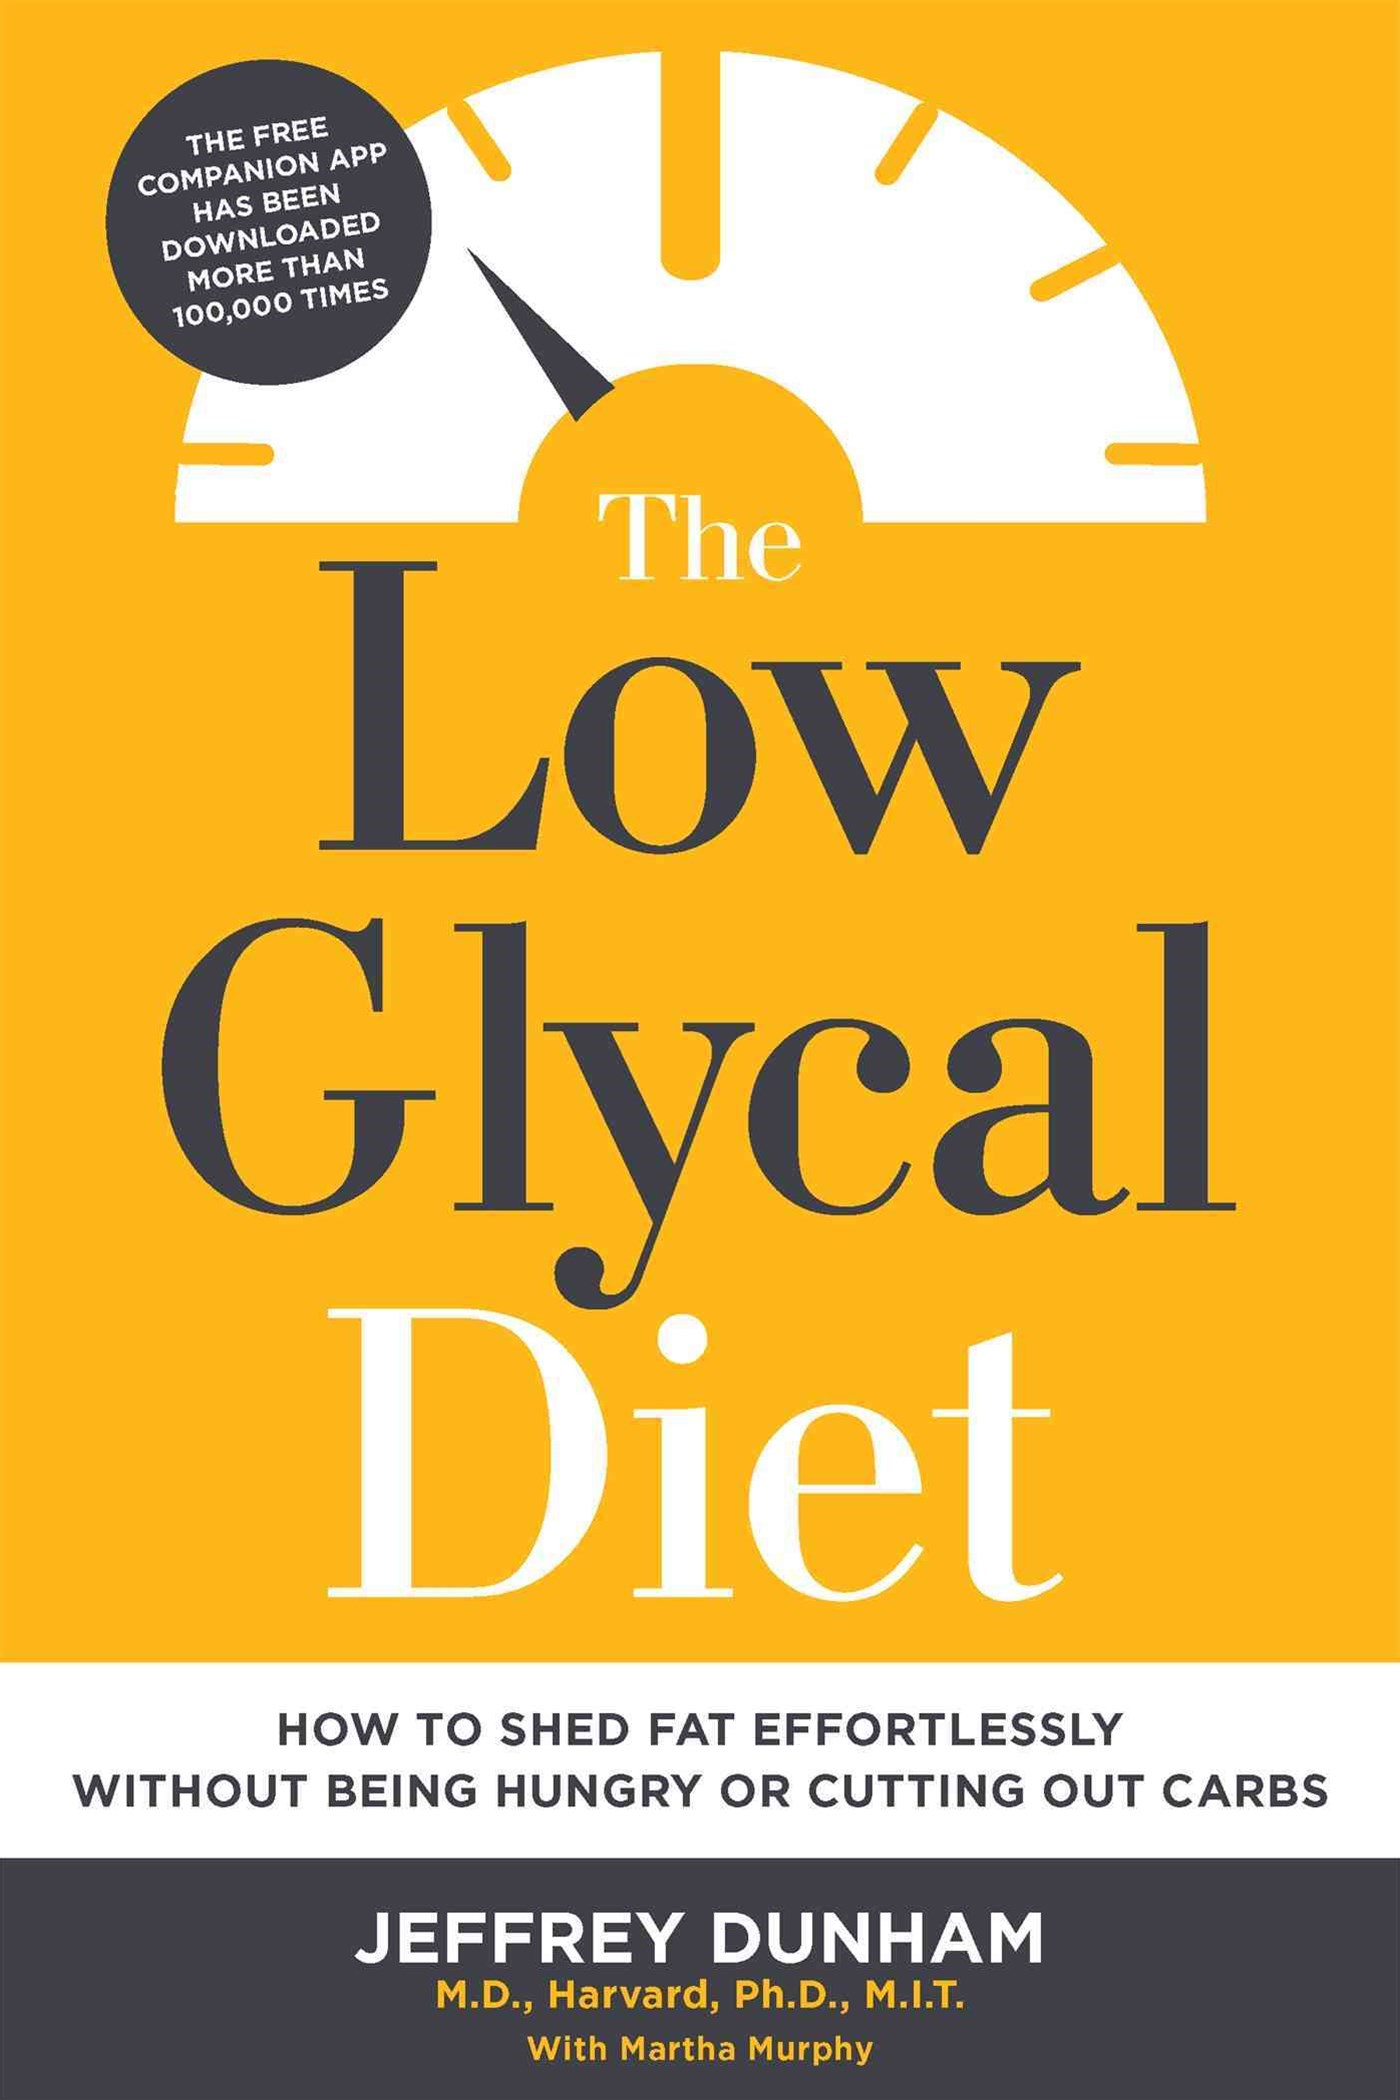 The Low Glycal Diet